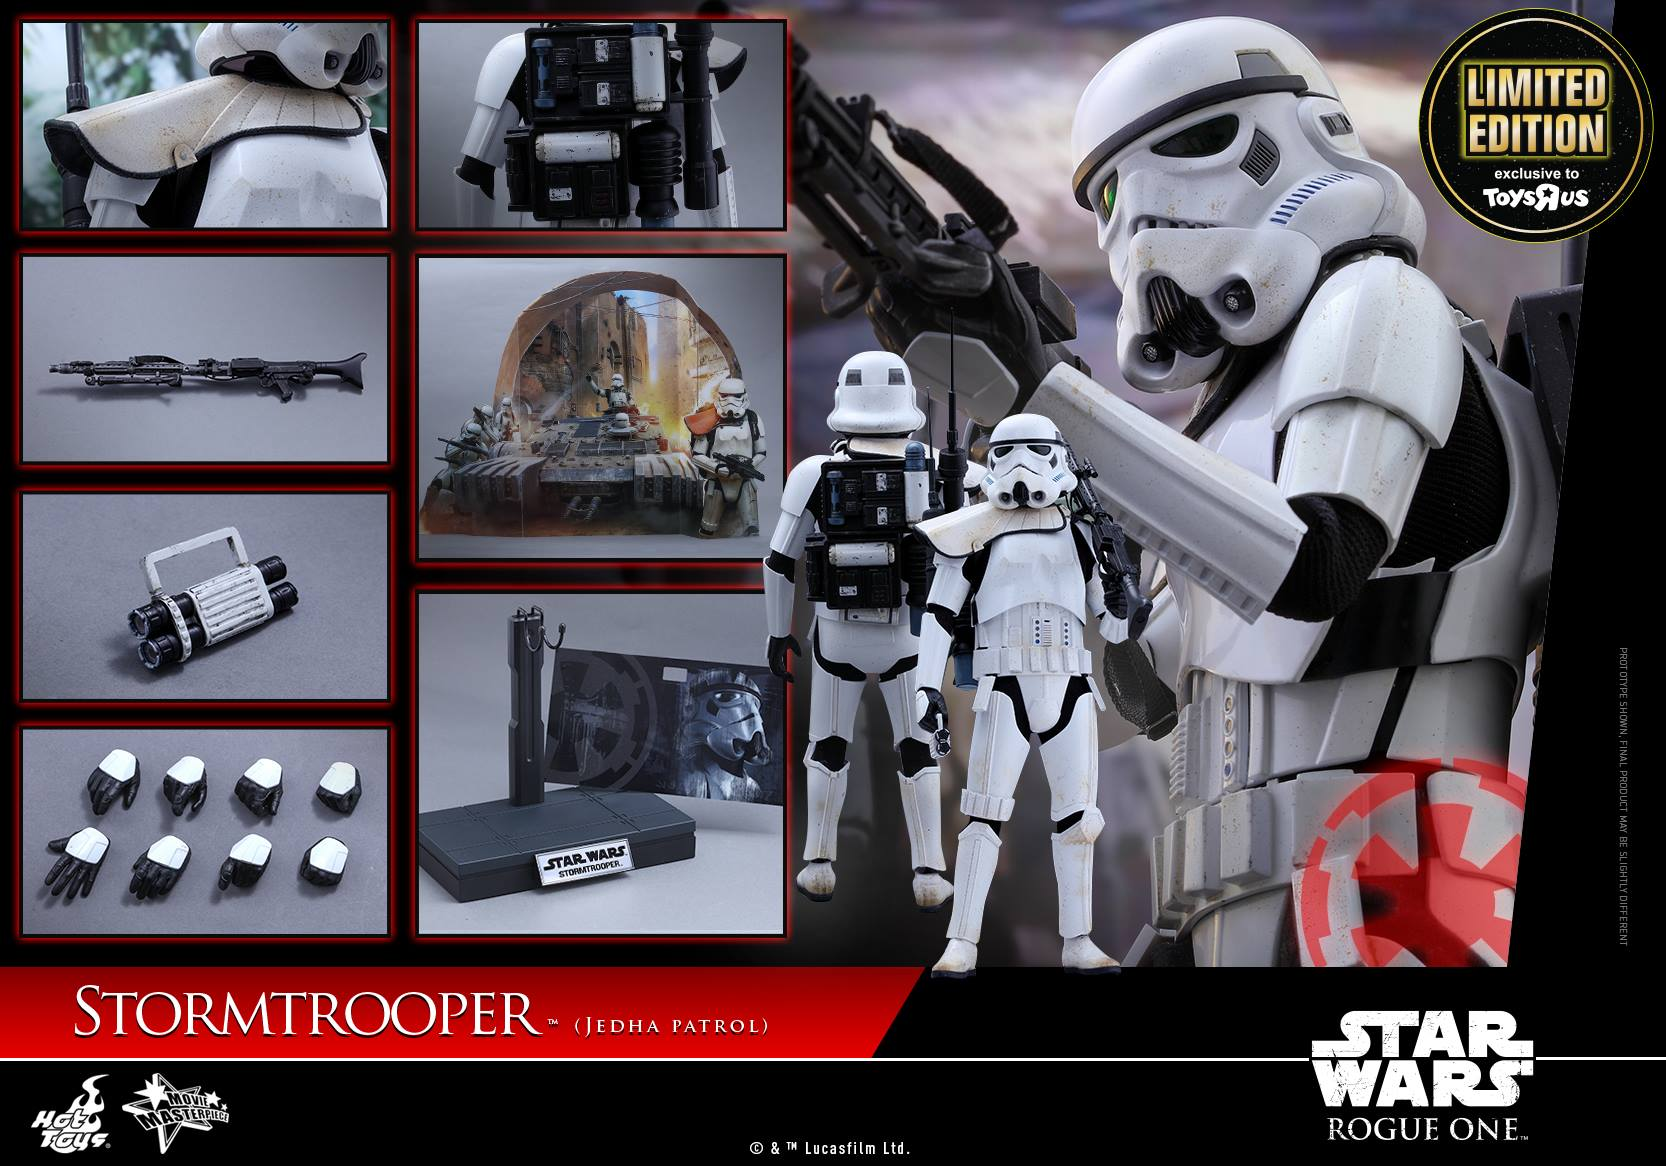 Toys R Us Exclusive Stormtrooper